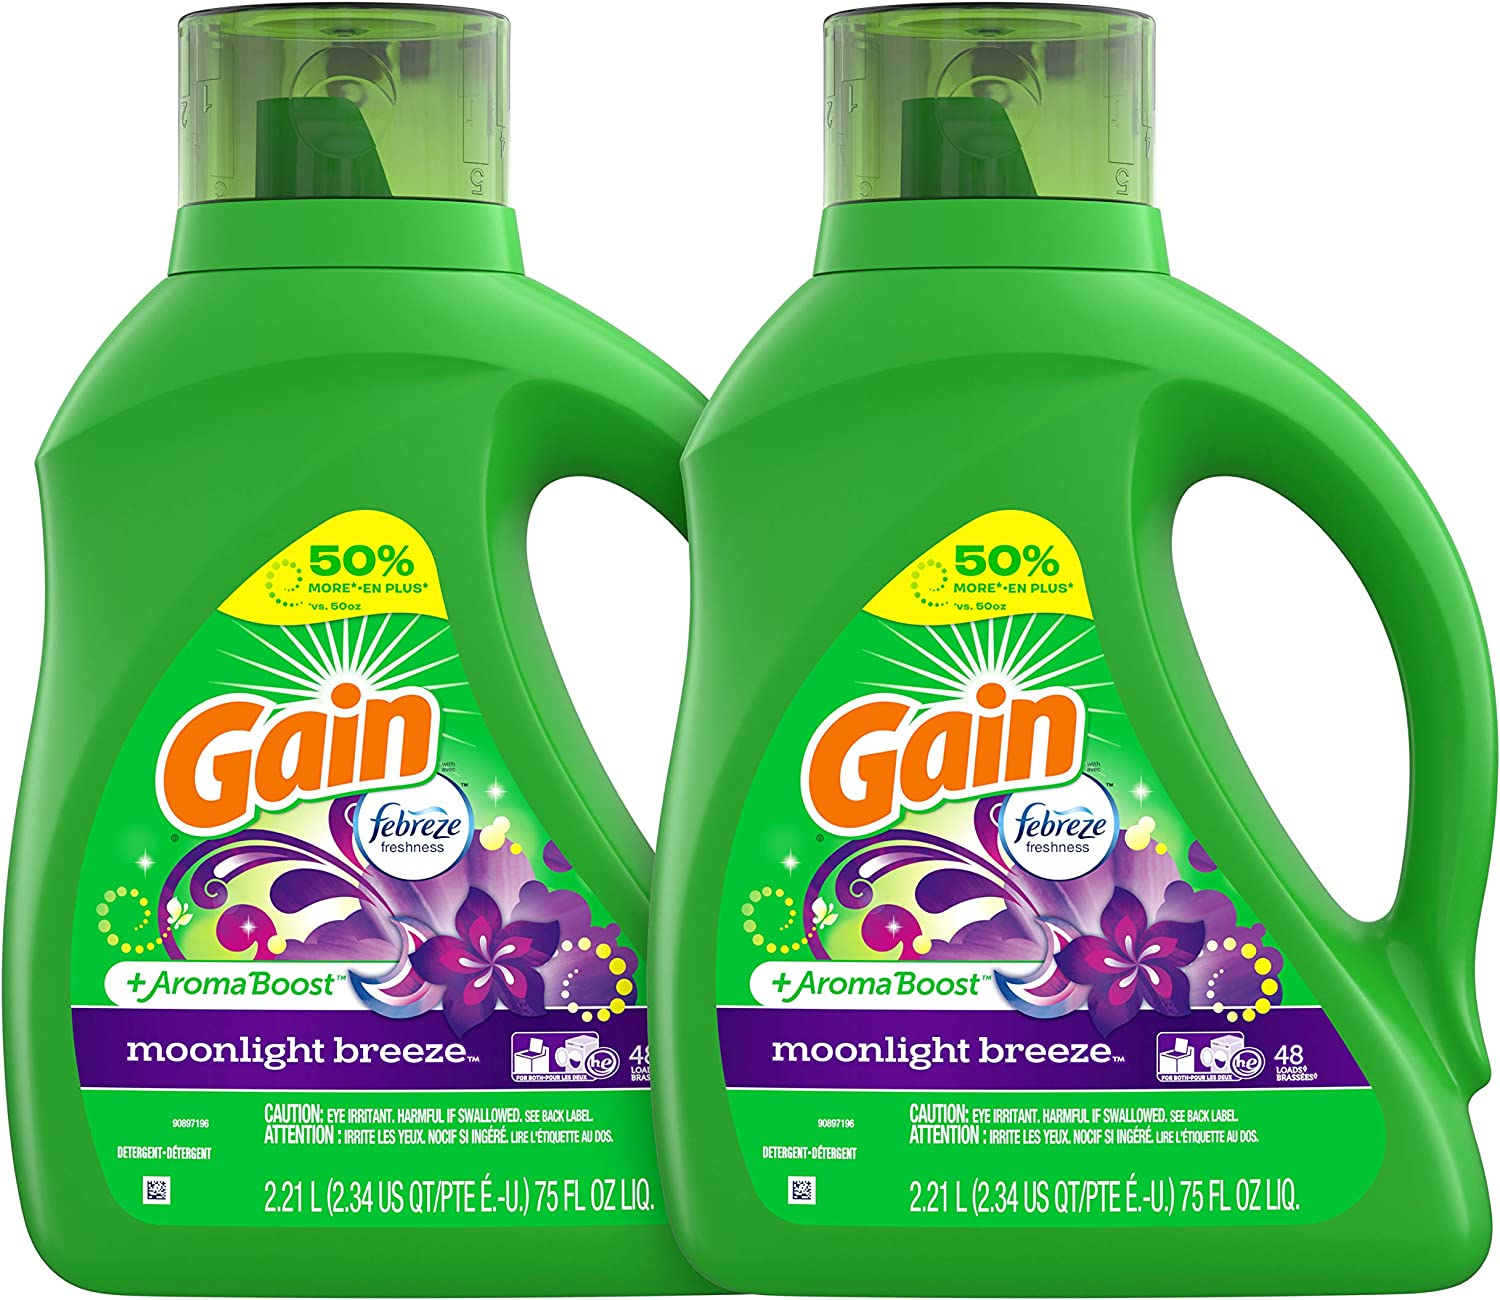 Gain Liquid Laundry Detergent, Moonlight Breeze, 2 Count, 75 fl oz Each, 96 Total Loads